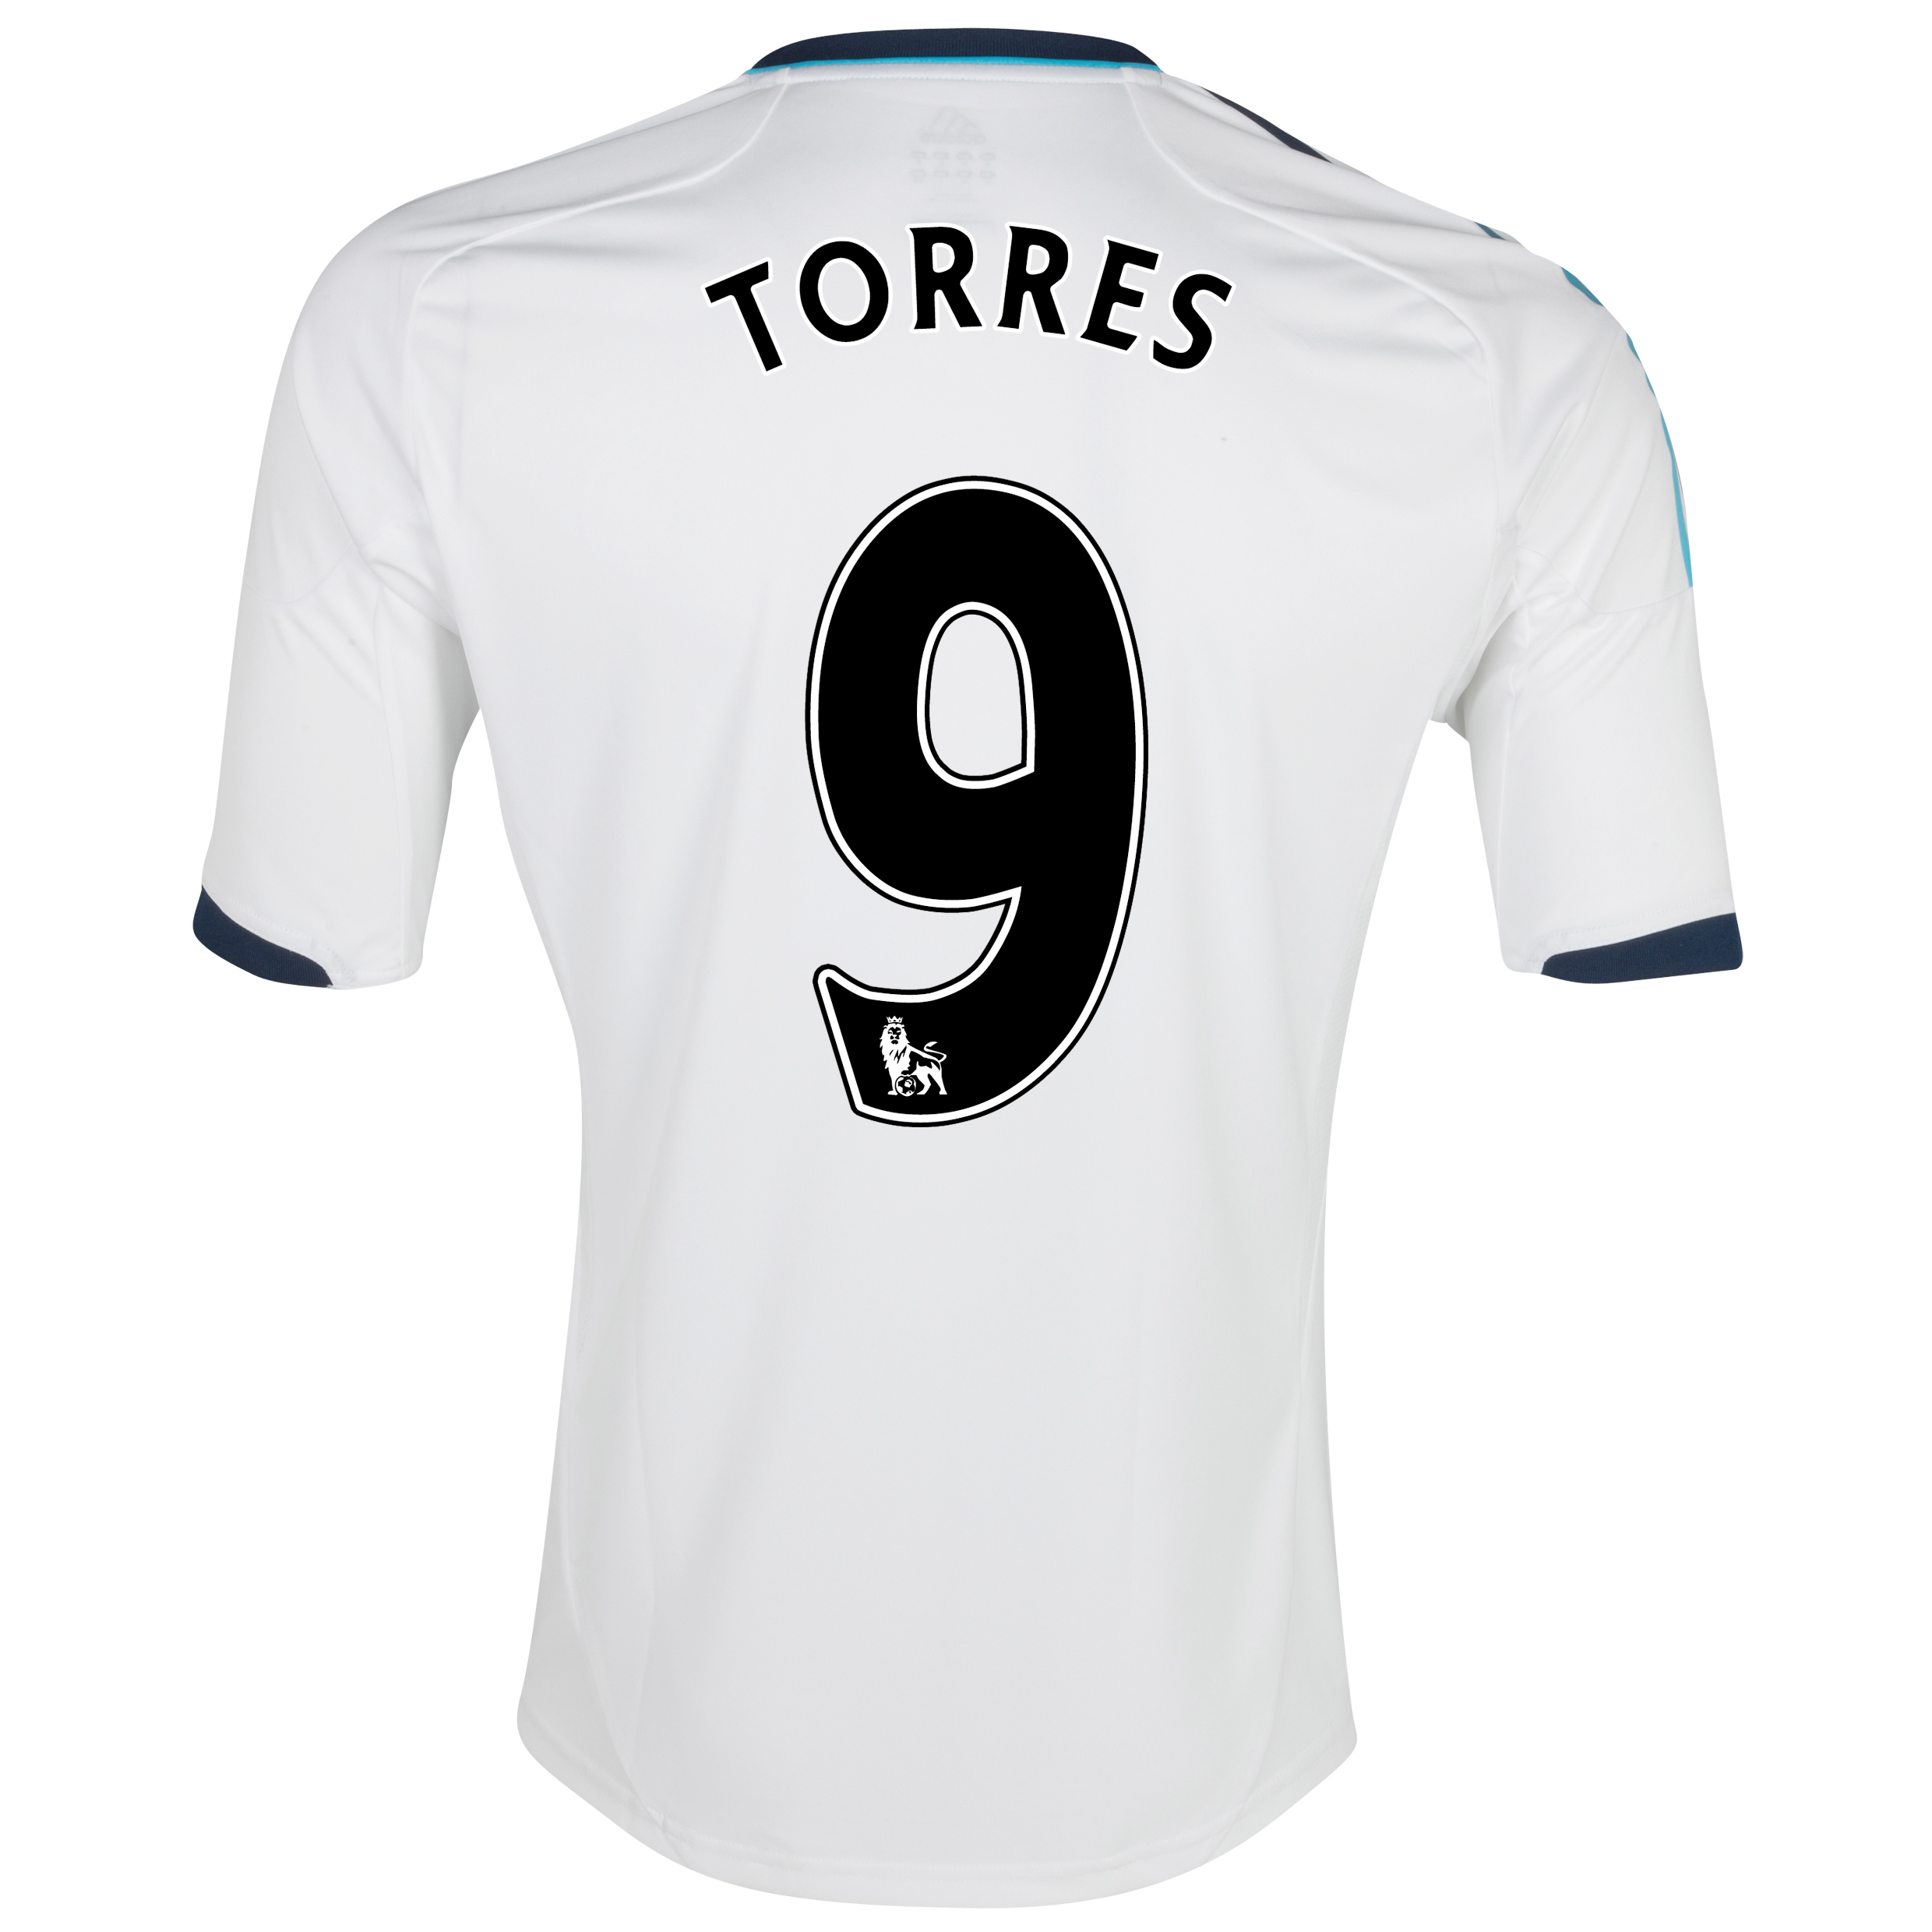 Chelsea Away Shirt 2012/13 - Youths with Torres 9 printing